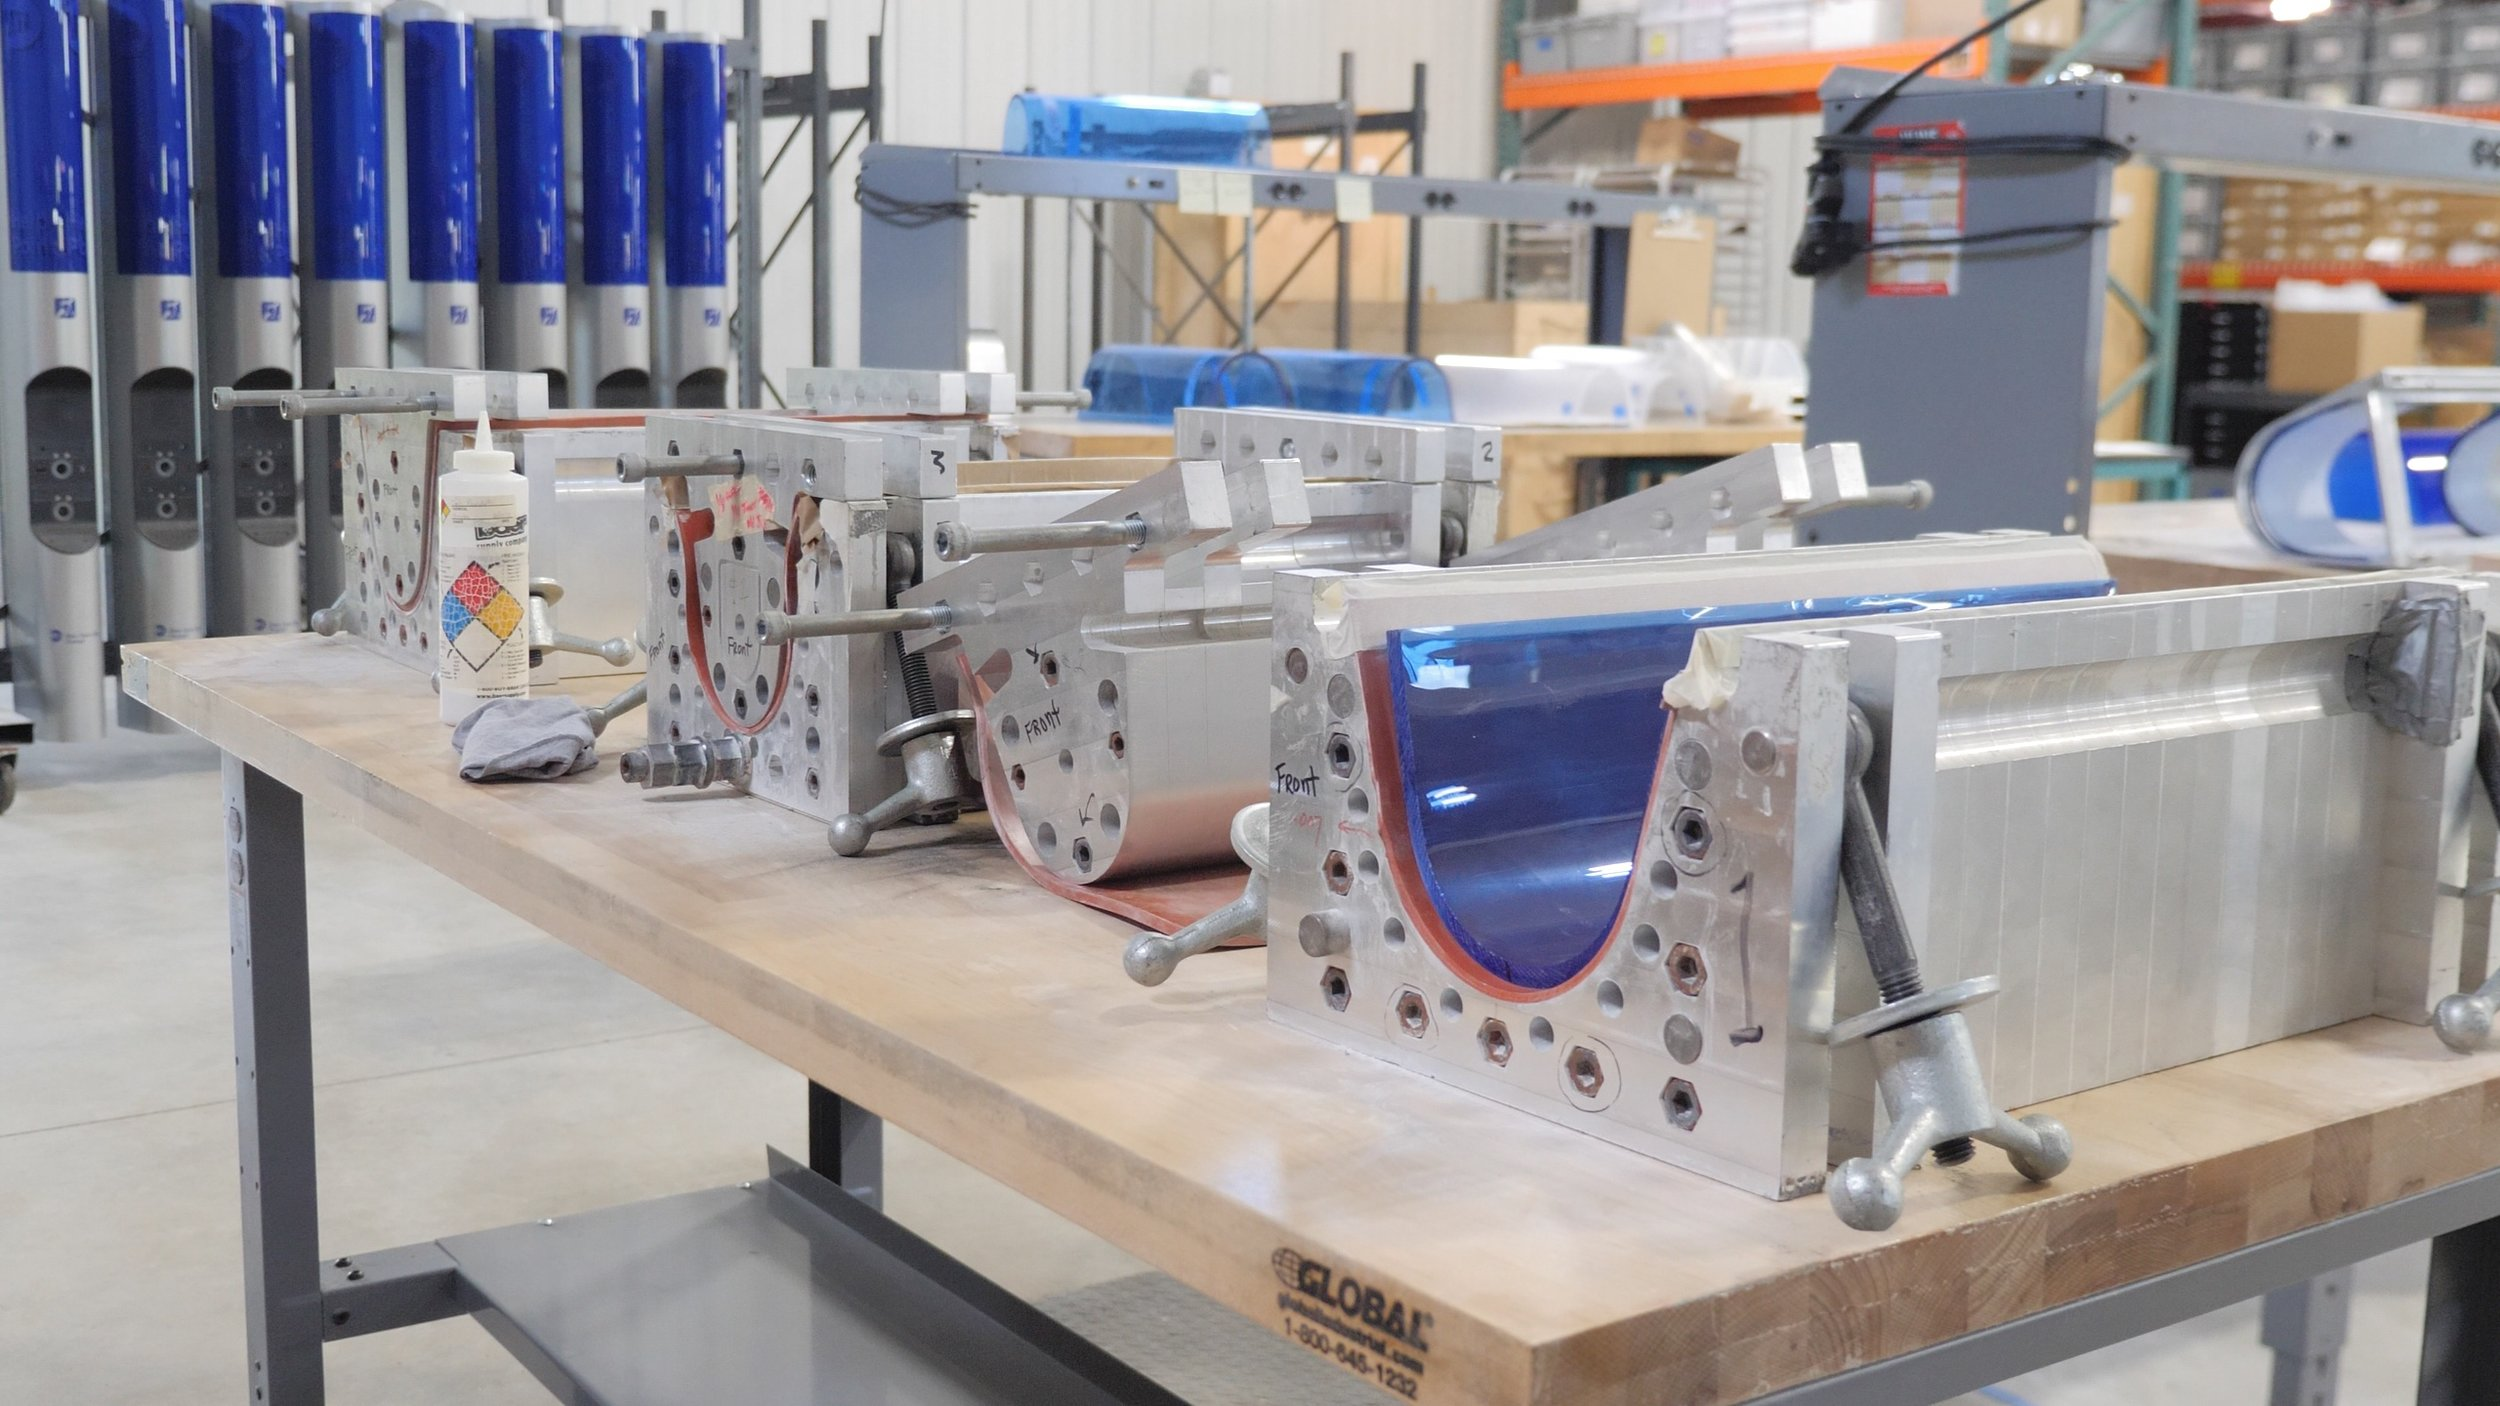 Custom molds fabricated at Boyce are used to form the sheets of blue polymer into just the right shape.